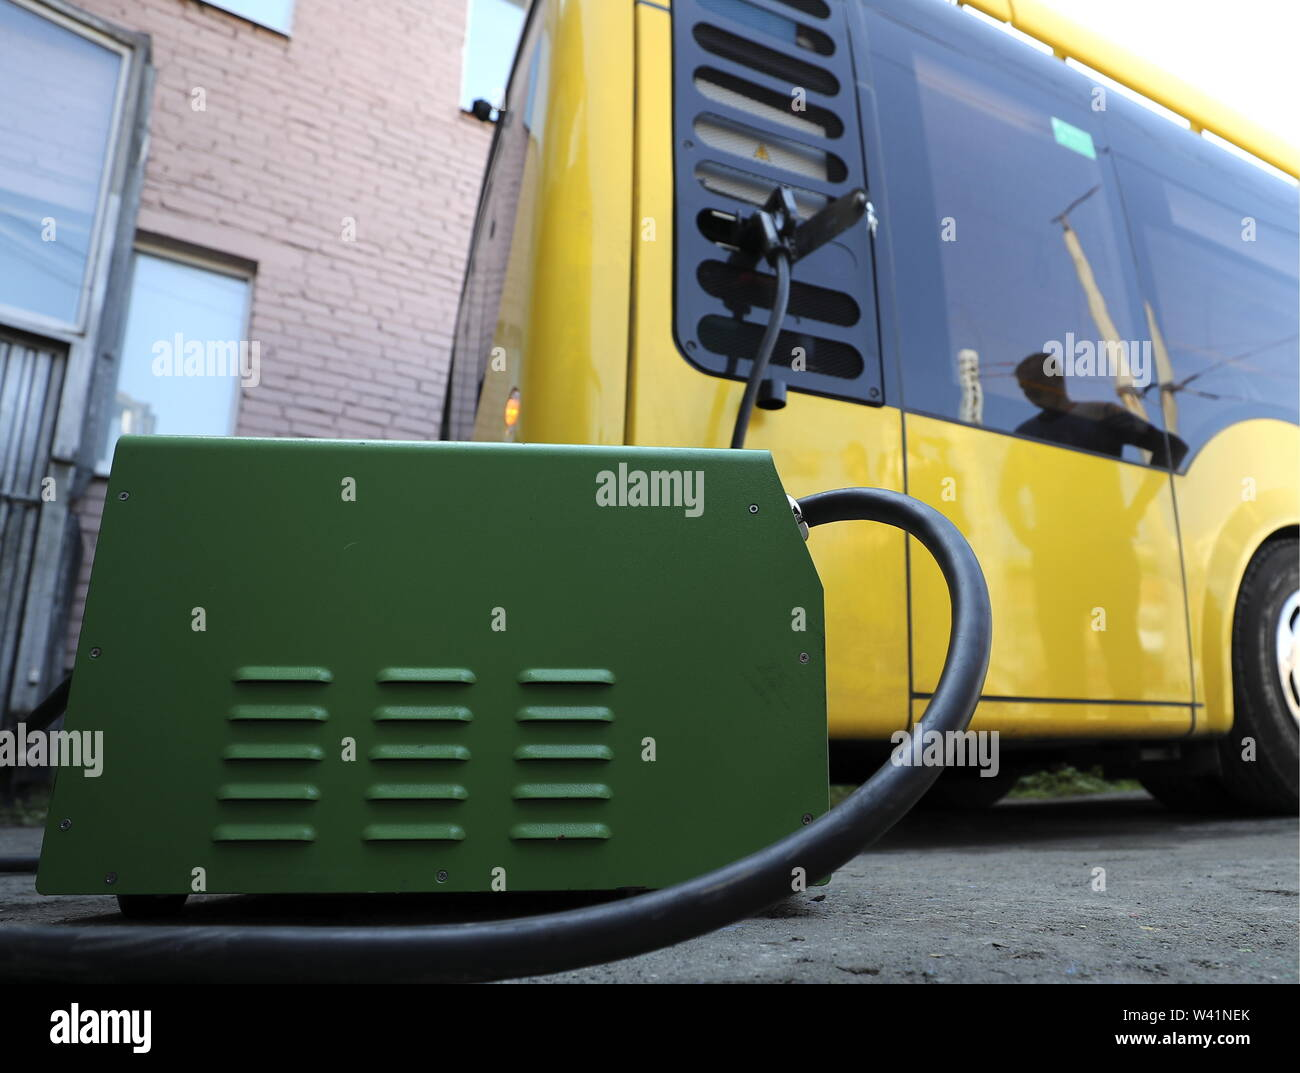 Yekaterinburg, Russia. 19th July, 2019. YEKATERINBURG, RUSSIA - JULY 19, 2019: Charging a Belkommunmash electric bus ahead of a test run along Trolleybus Route 1, from Shchorsa Street to a railway station. The bus, manufactured by Belarus' Belkommunmash Company, was displayed at the 2019 Innoprom exhibition. Donat Sorokin/TASS Credit: ITAR-TASS News Agency/Alamy Live News - Stock Image